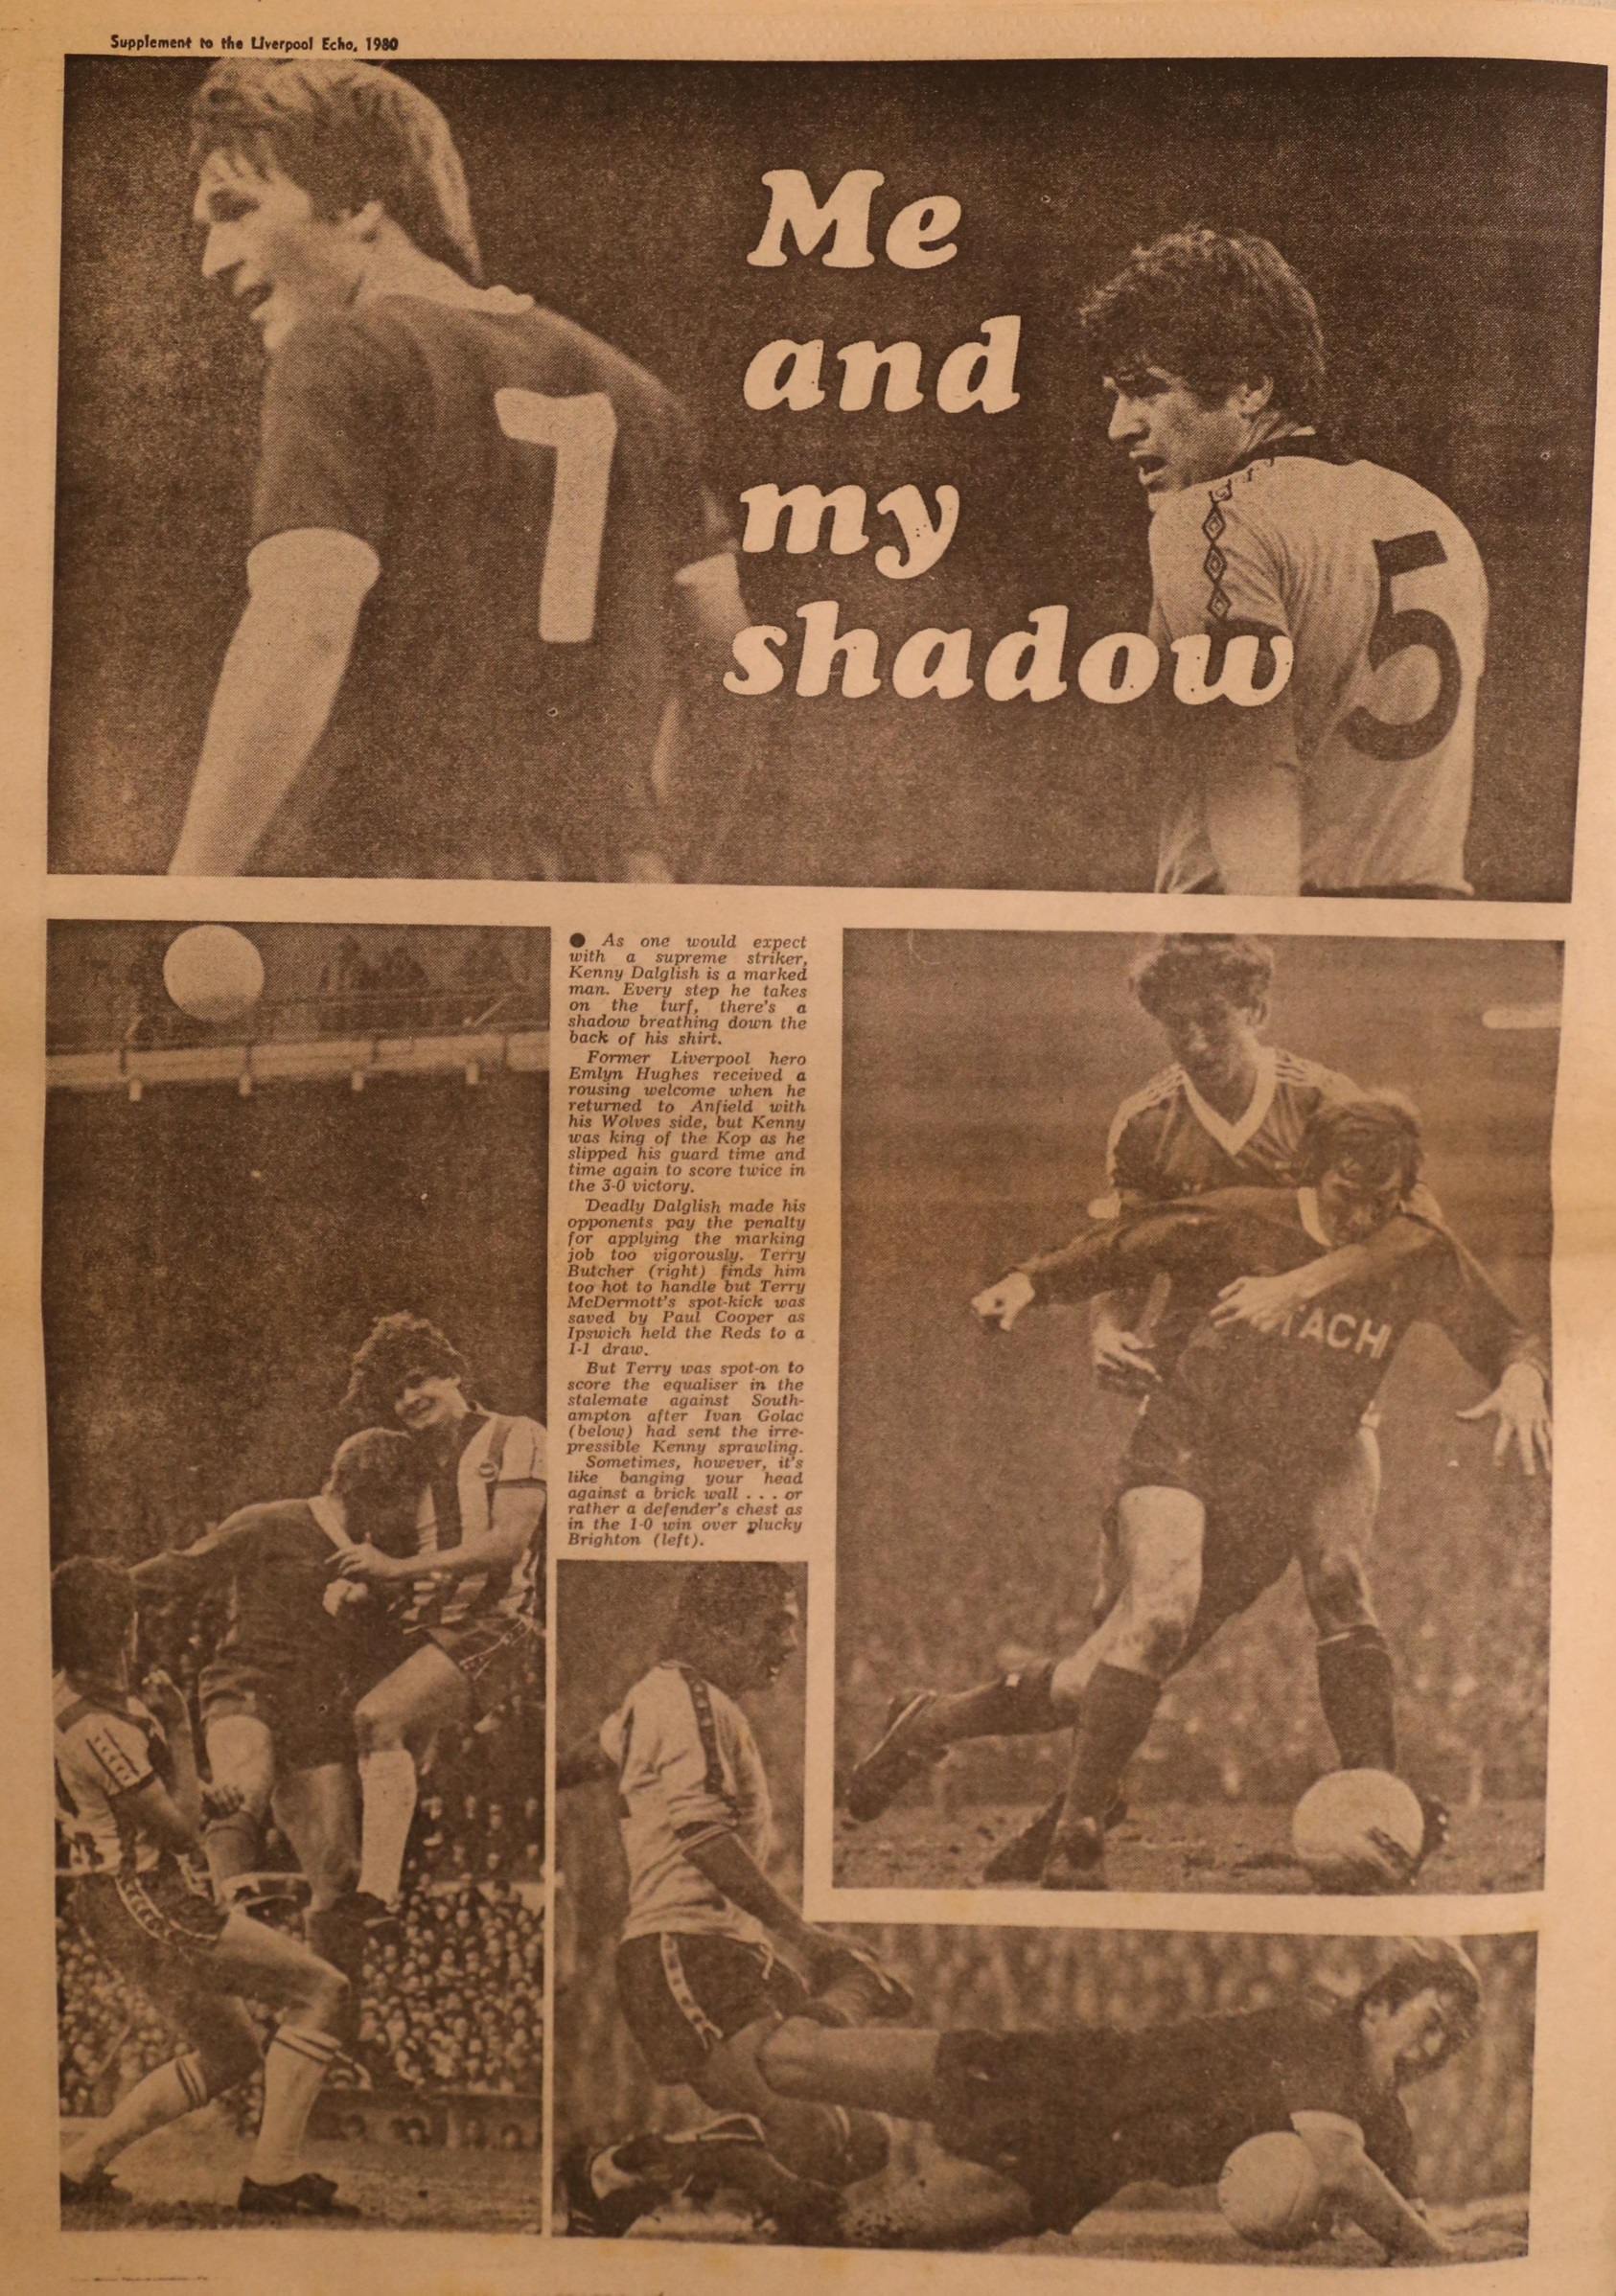 Me and my shadow - Emlyn stayed close to Dalglish - 3 May 1980